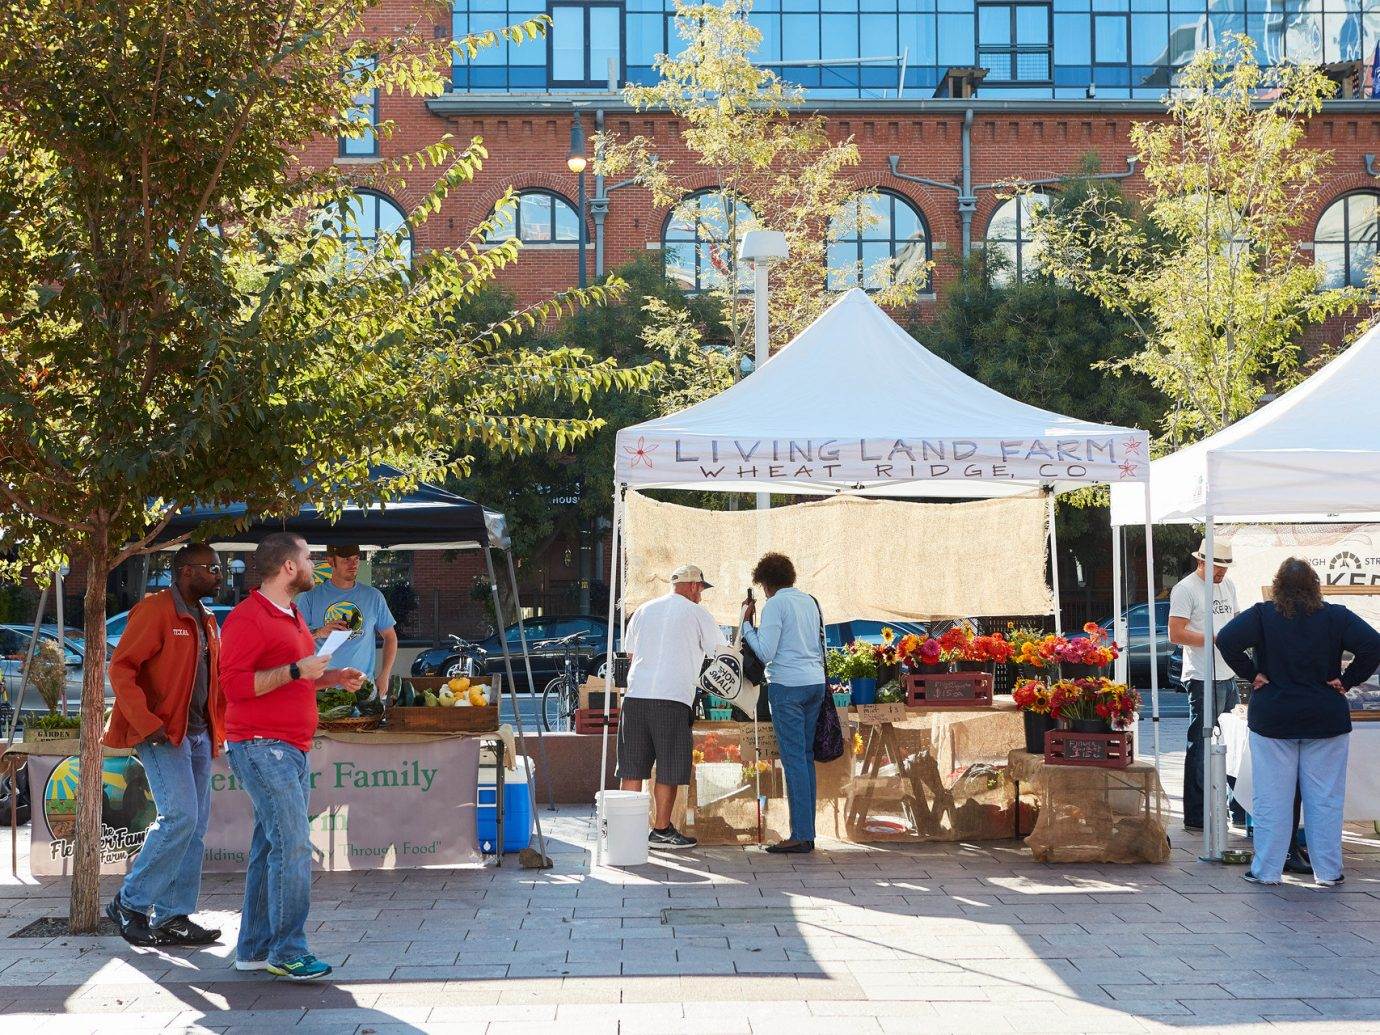 Buildings charming City city streets farmers market Food + Drink fresh fruit Greenery market markets organic Outdoor Activities Outdoors park people produce quaint shopping stand streets trees vegetables tree outdoor person public space fair tourism group festival Playground